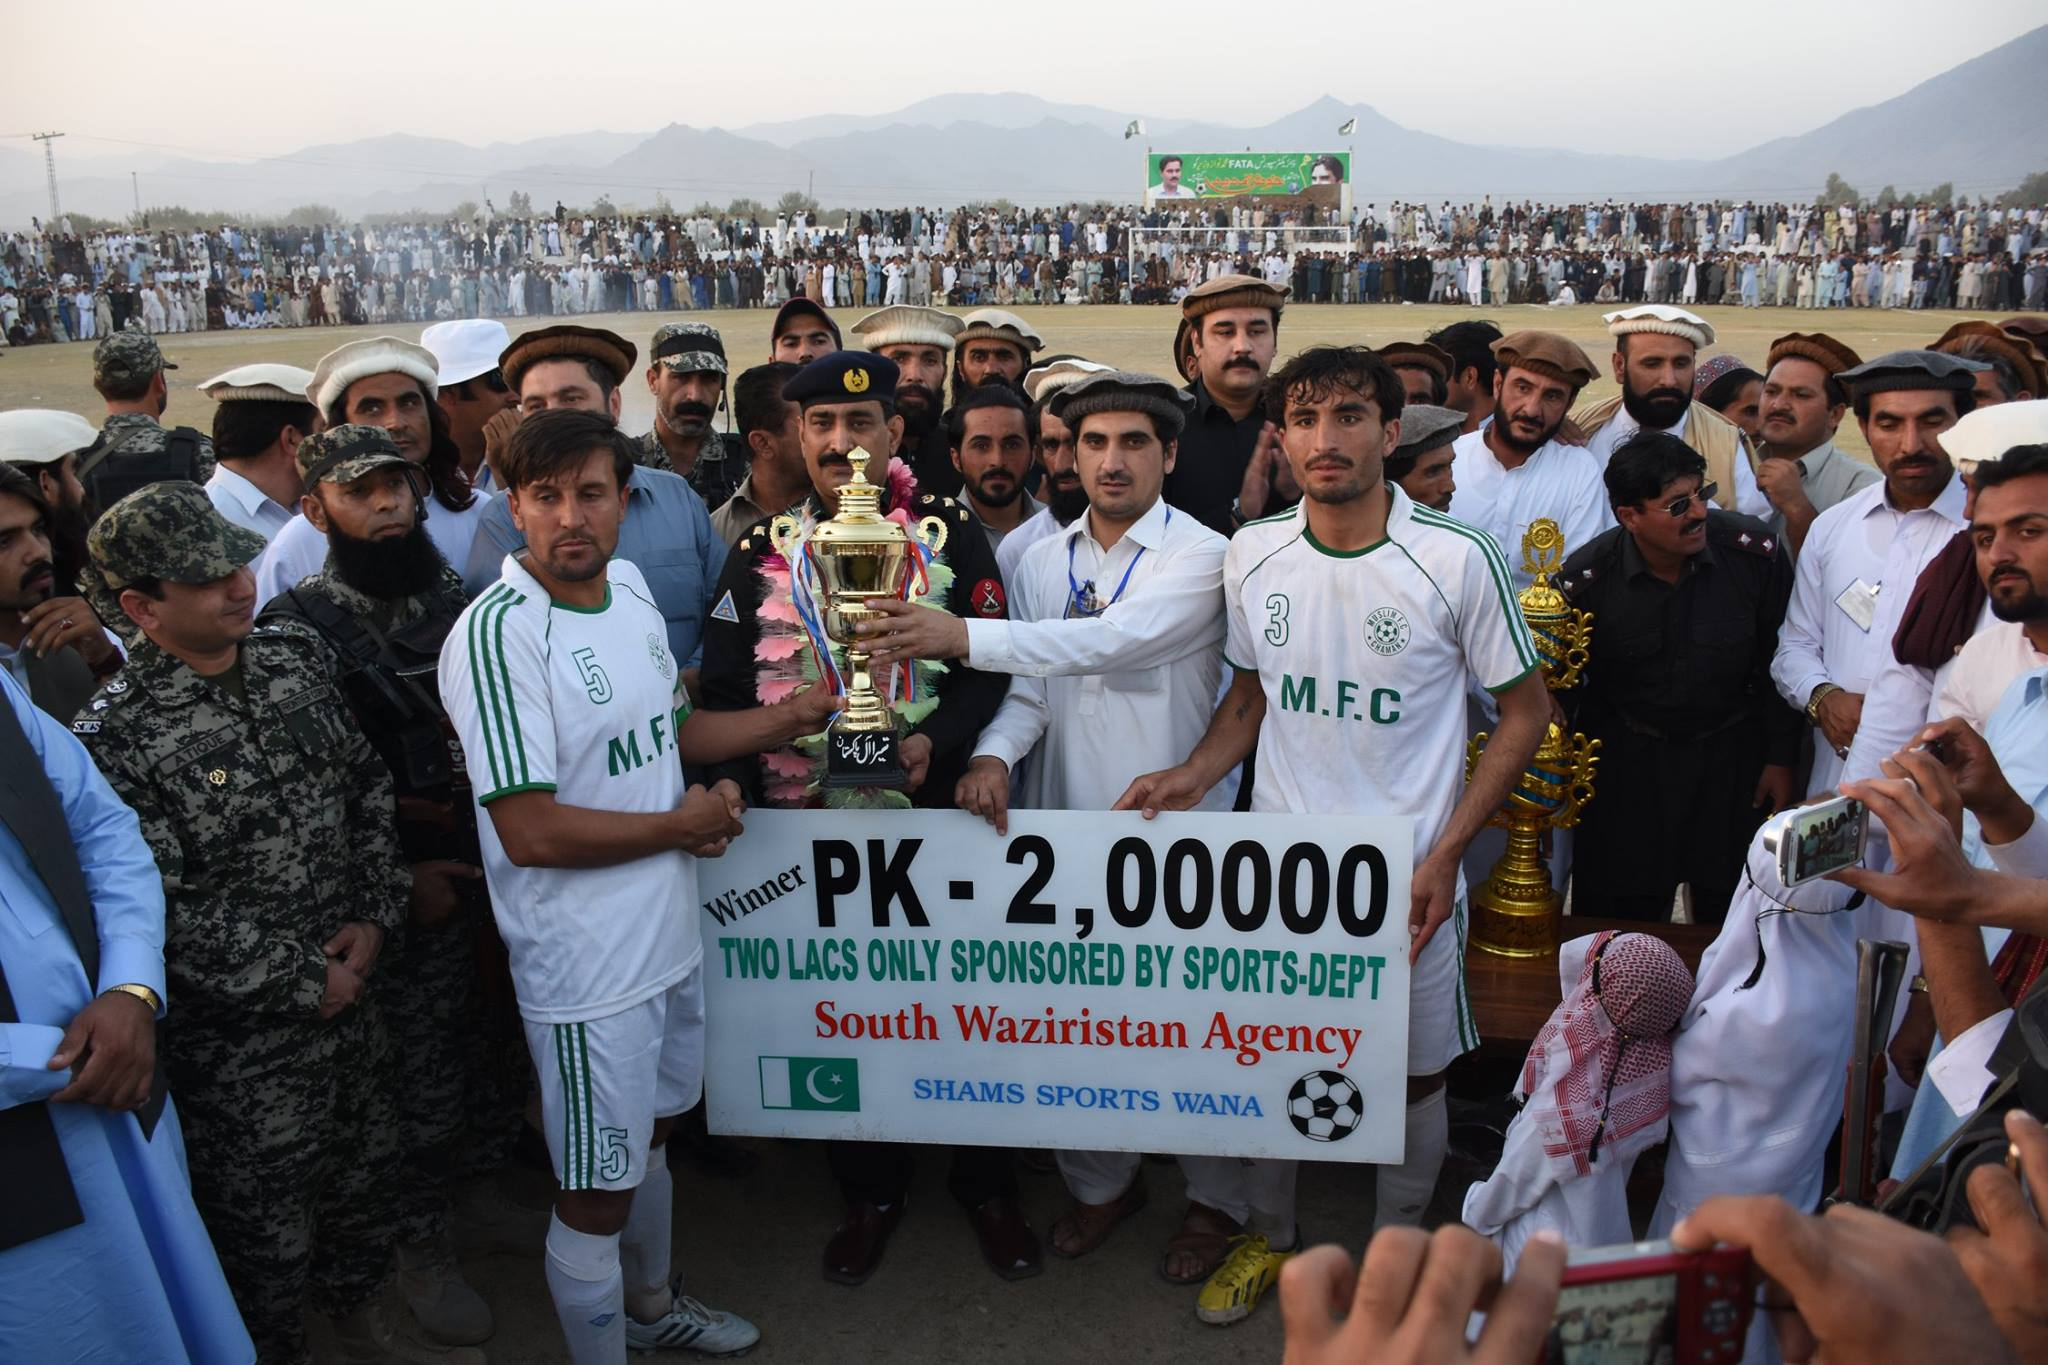 Euphoric crowd cheer football festivity as Muslim FC wins Peace Cup in Waziristan [Geo]